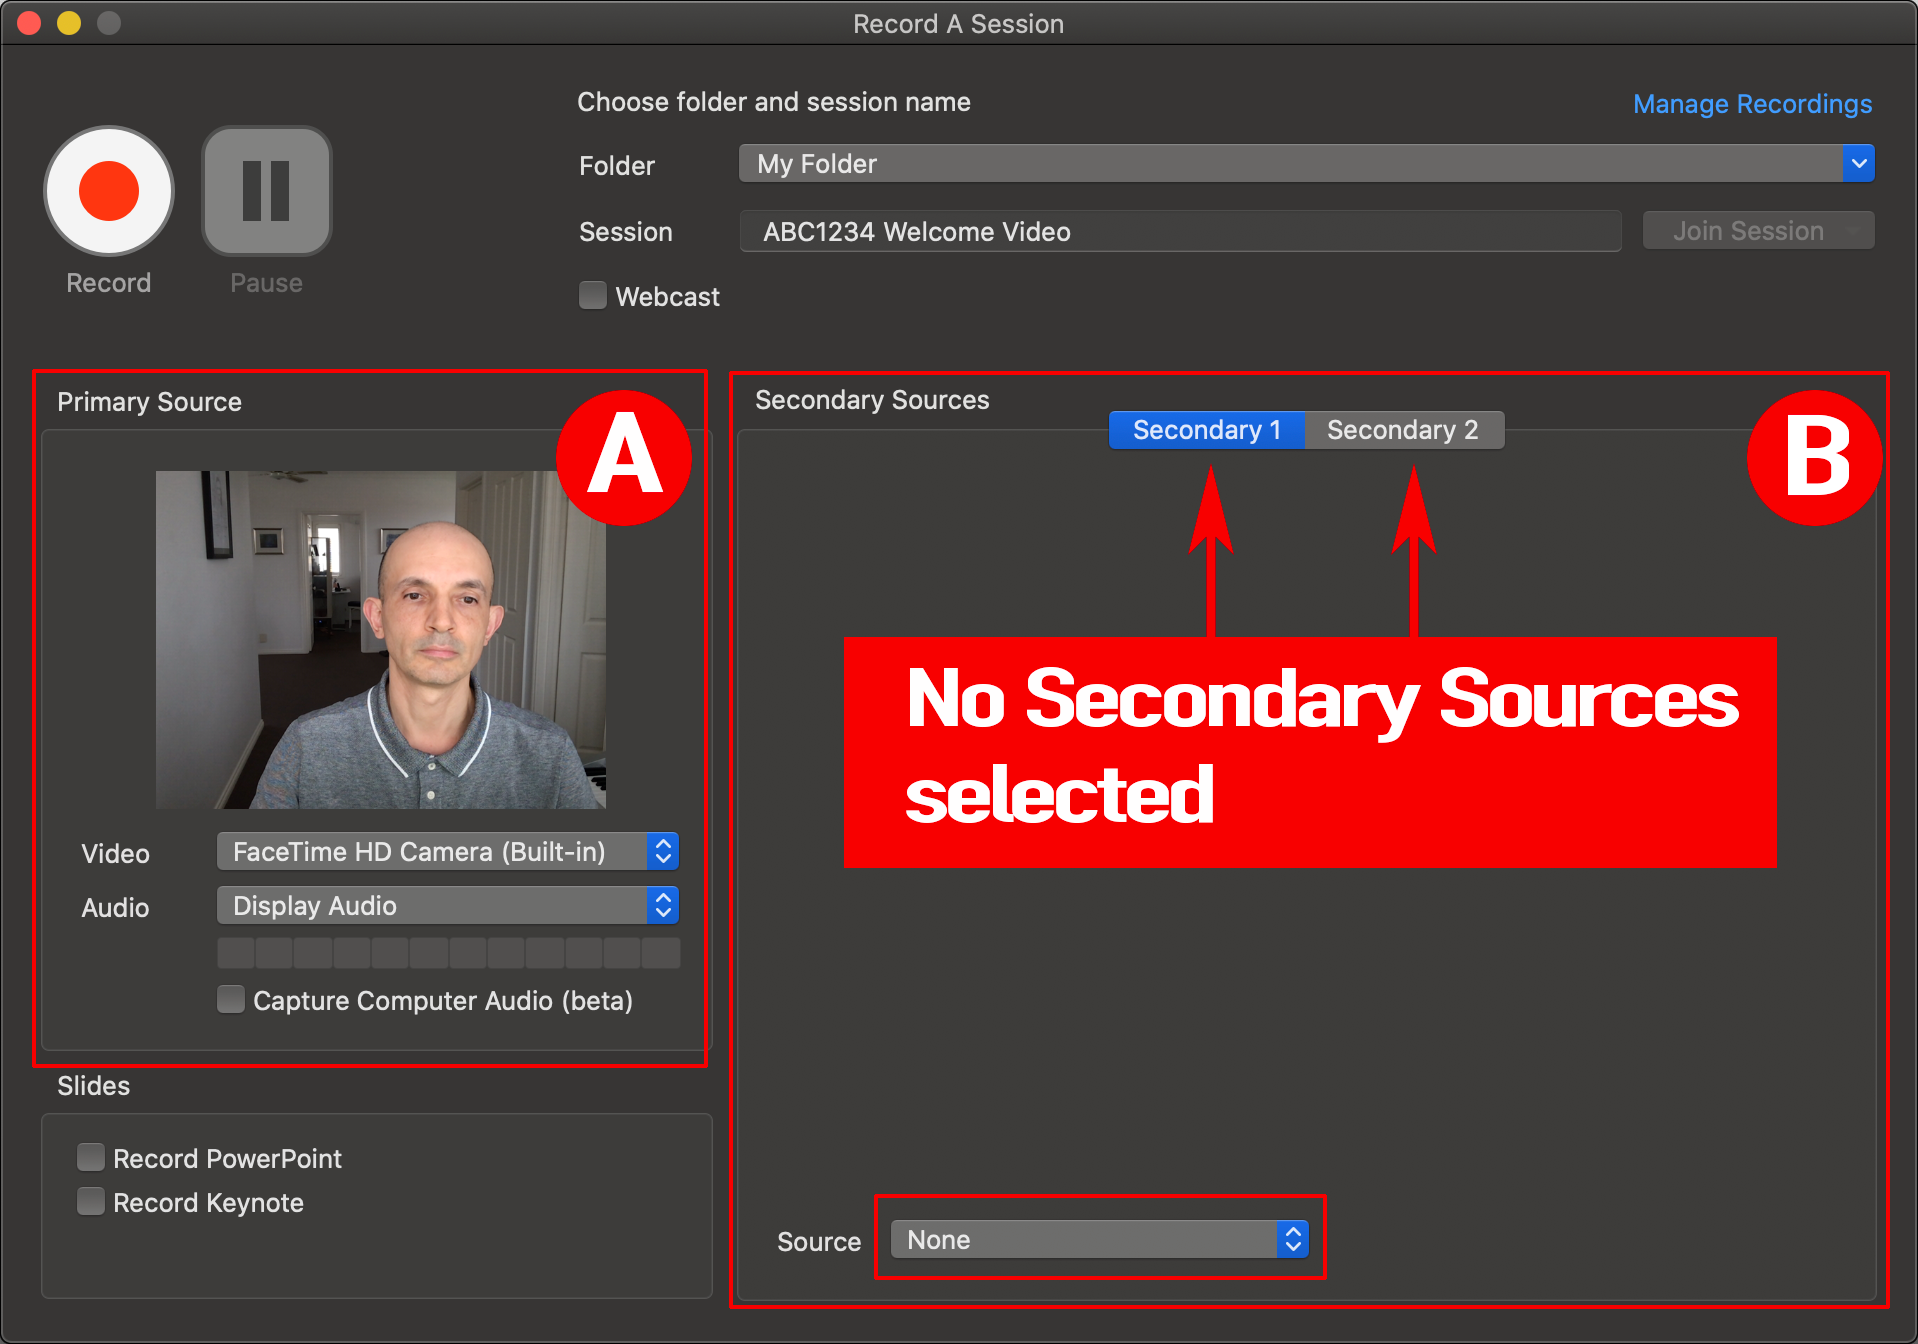 Select Primary source and keep both Secondary Sources unchecked